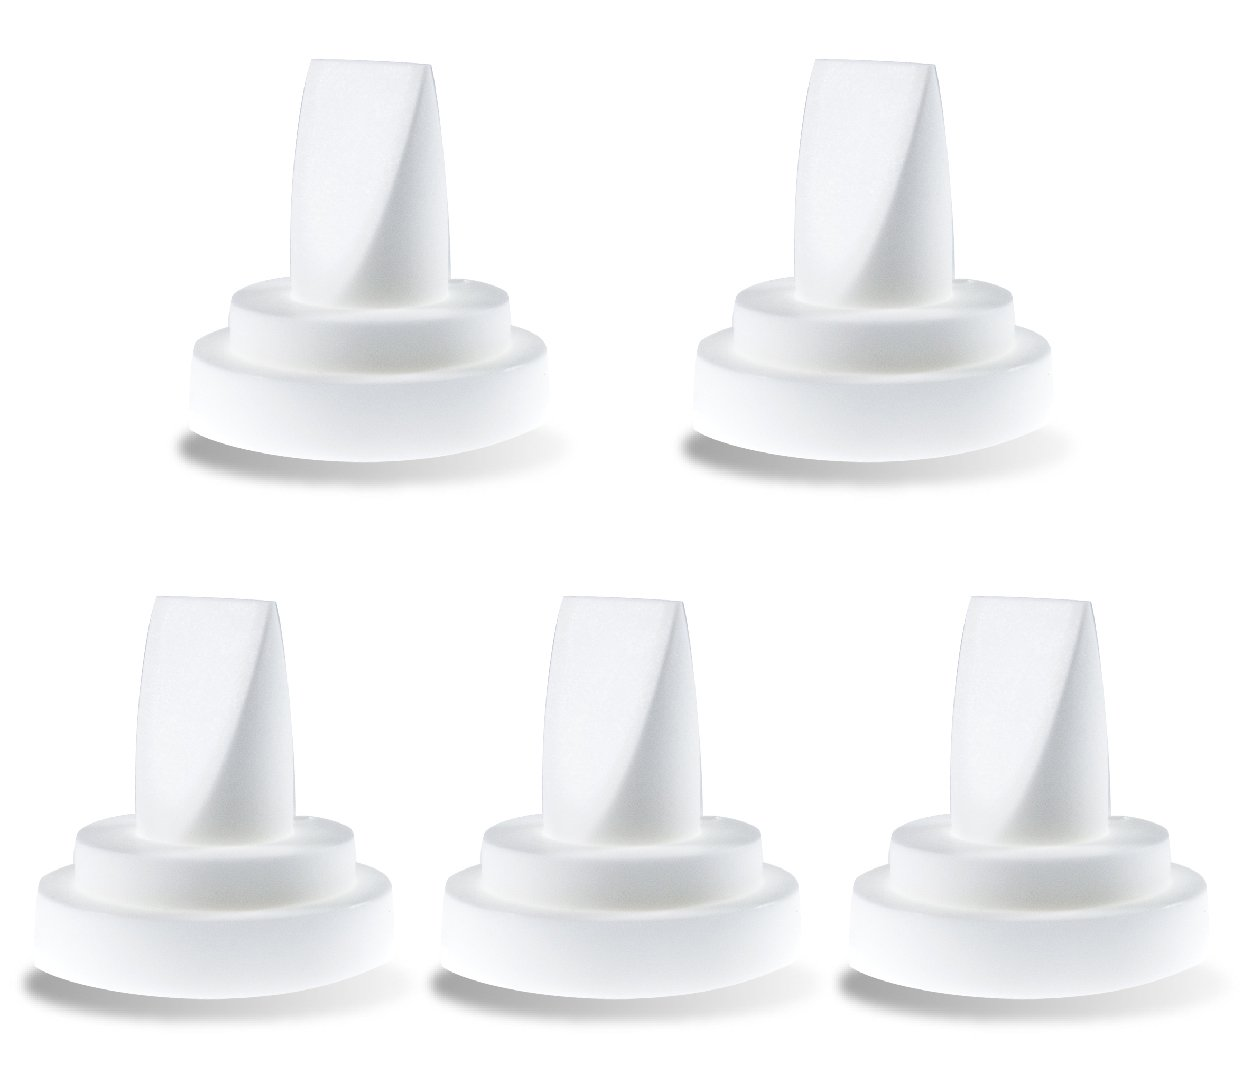 NeneSupply 5 Count Duckbill Valves for Medela and Spectra. Use with Spectra S1 Spectra S2 and Medela Pump In Style Symphony Not Original Spectra S2 Accessories Replaces Spectra Valve and Medela Valve N010-5V